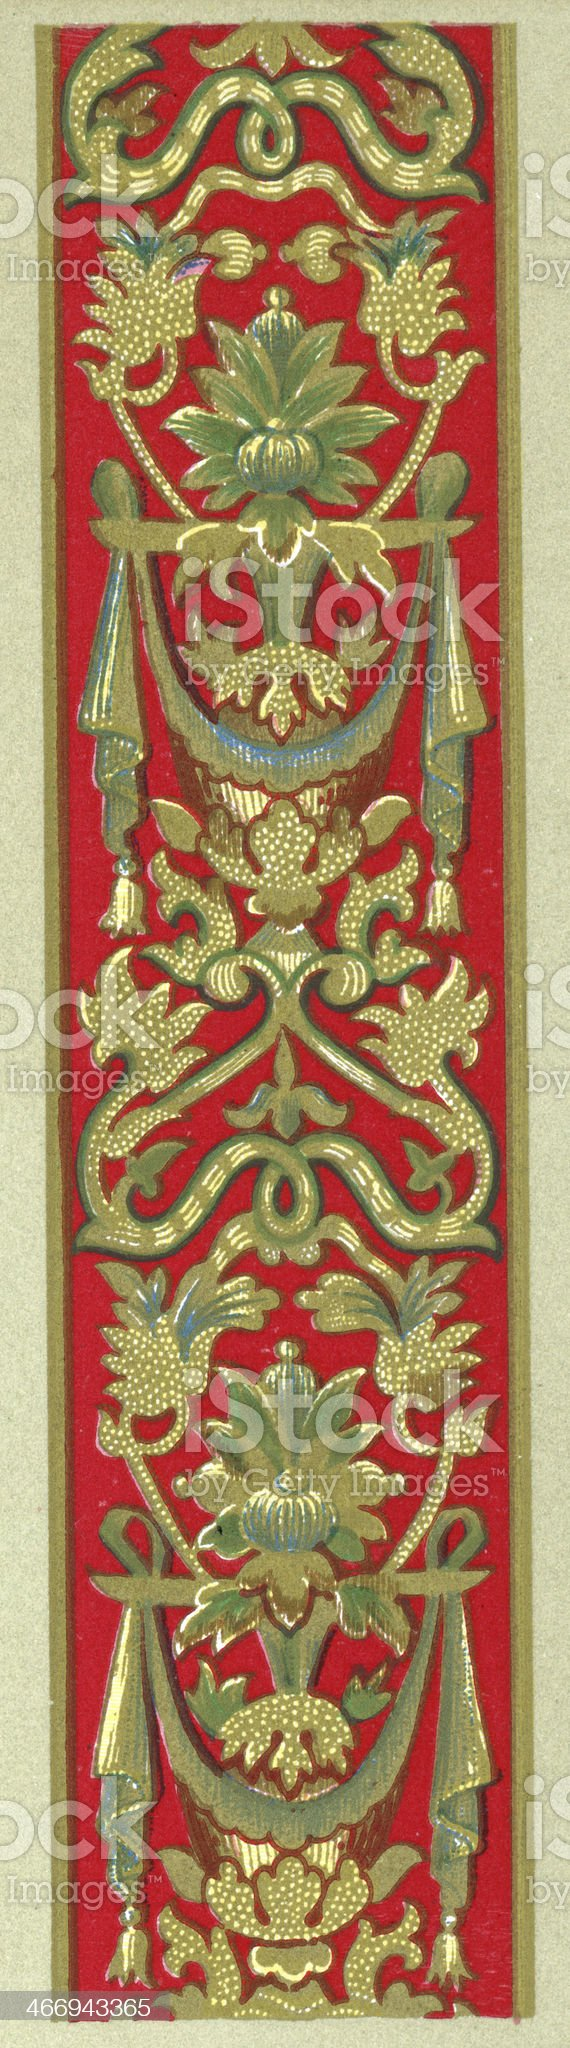 Twining Foliage Pattern - 16th Century royalty-free stock vector art